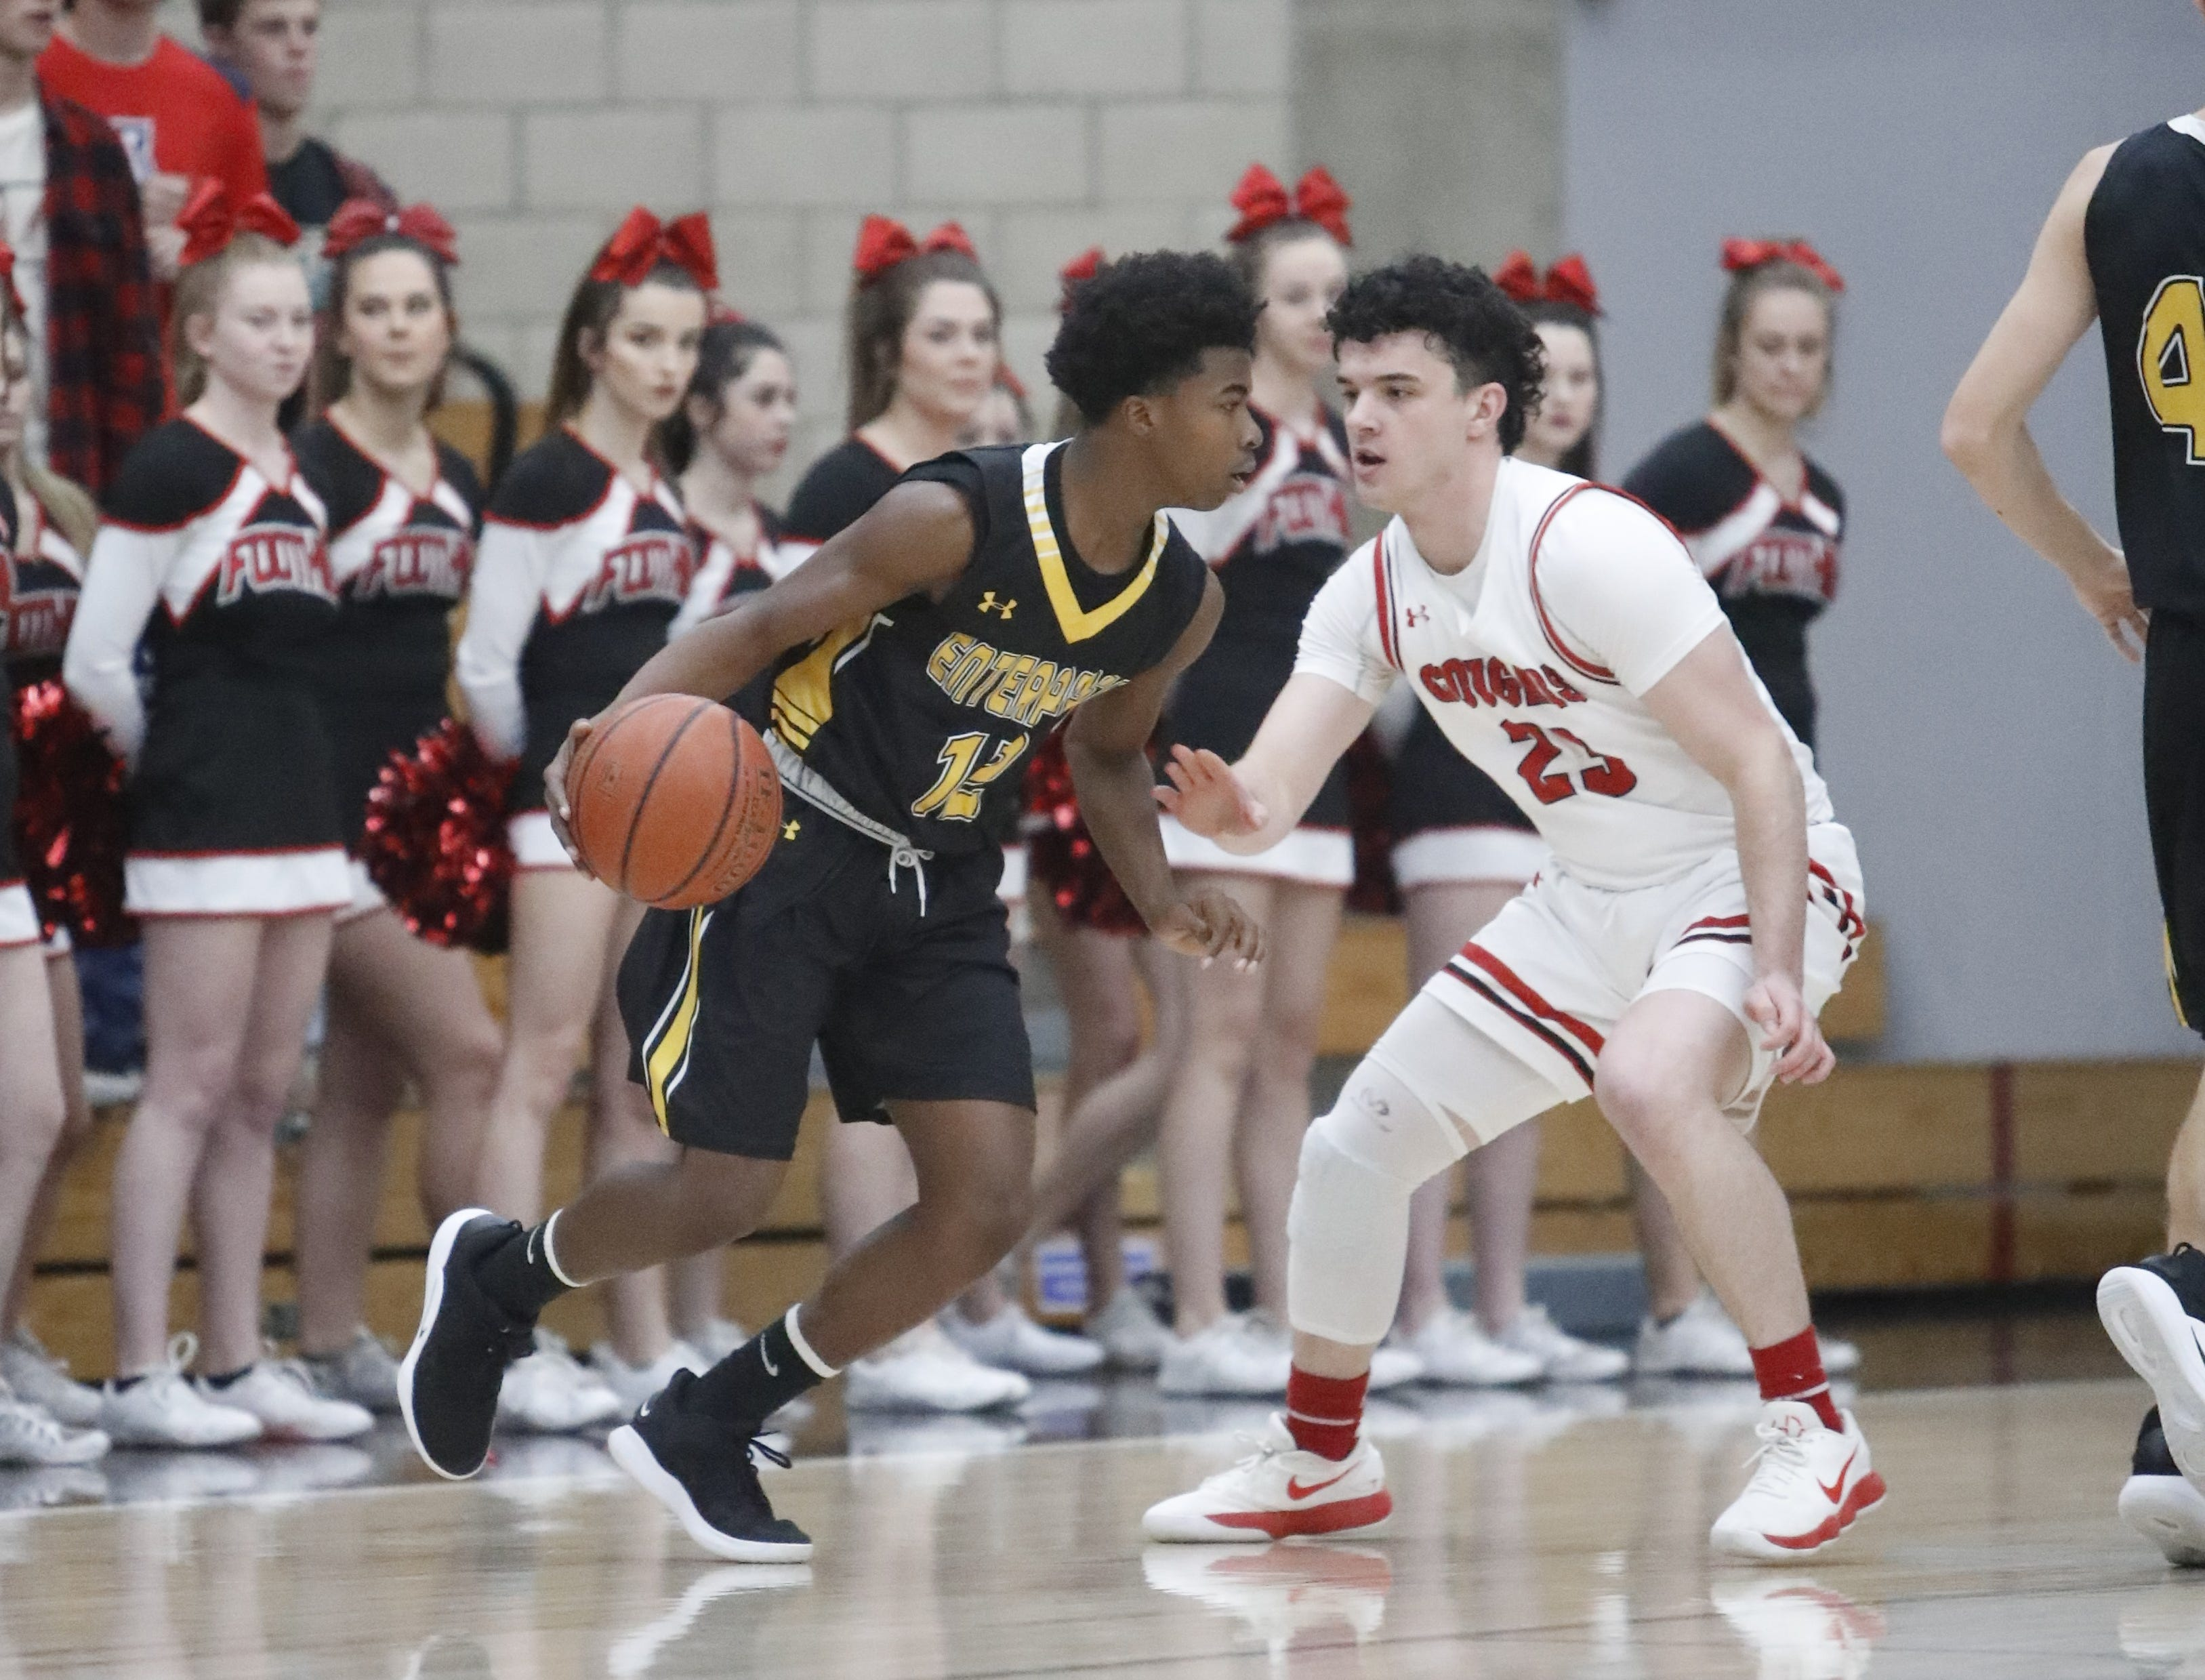 Enterprise's DeMarreya Lewis-Cooper (left) tries to get around Foothill's Chase Rossman during the Cougars' 55-50 win over the Hornets  in the Division III Northern Section semifinals on Wednesday, Feb. 20.